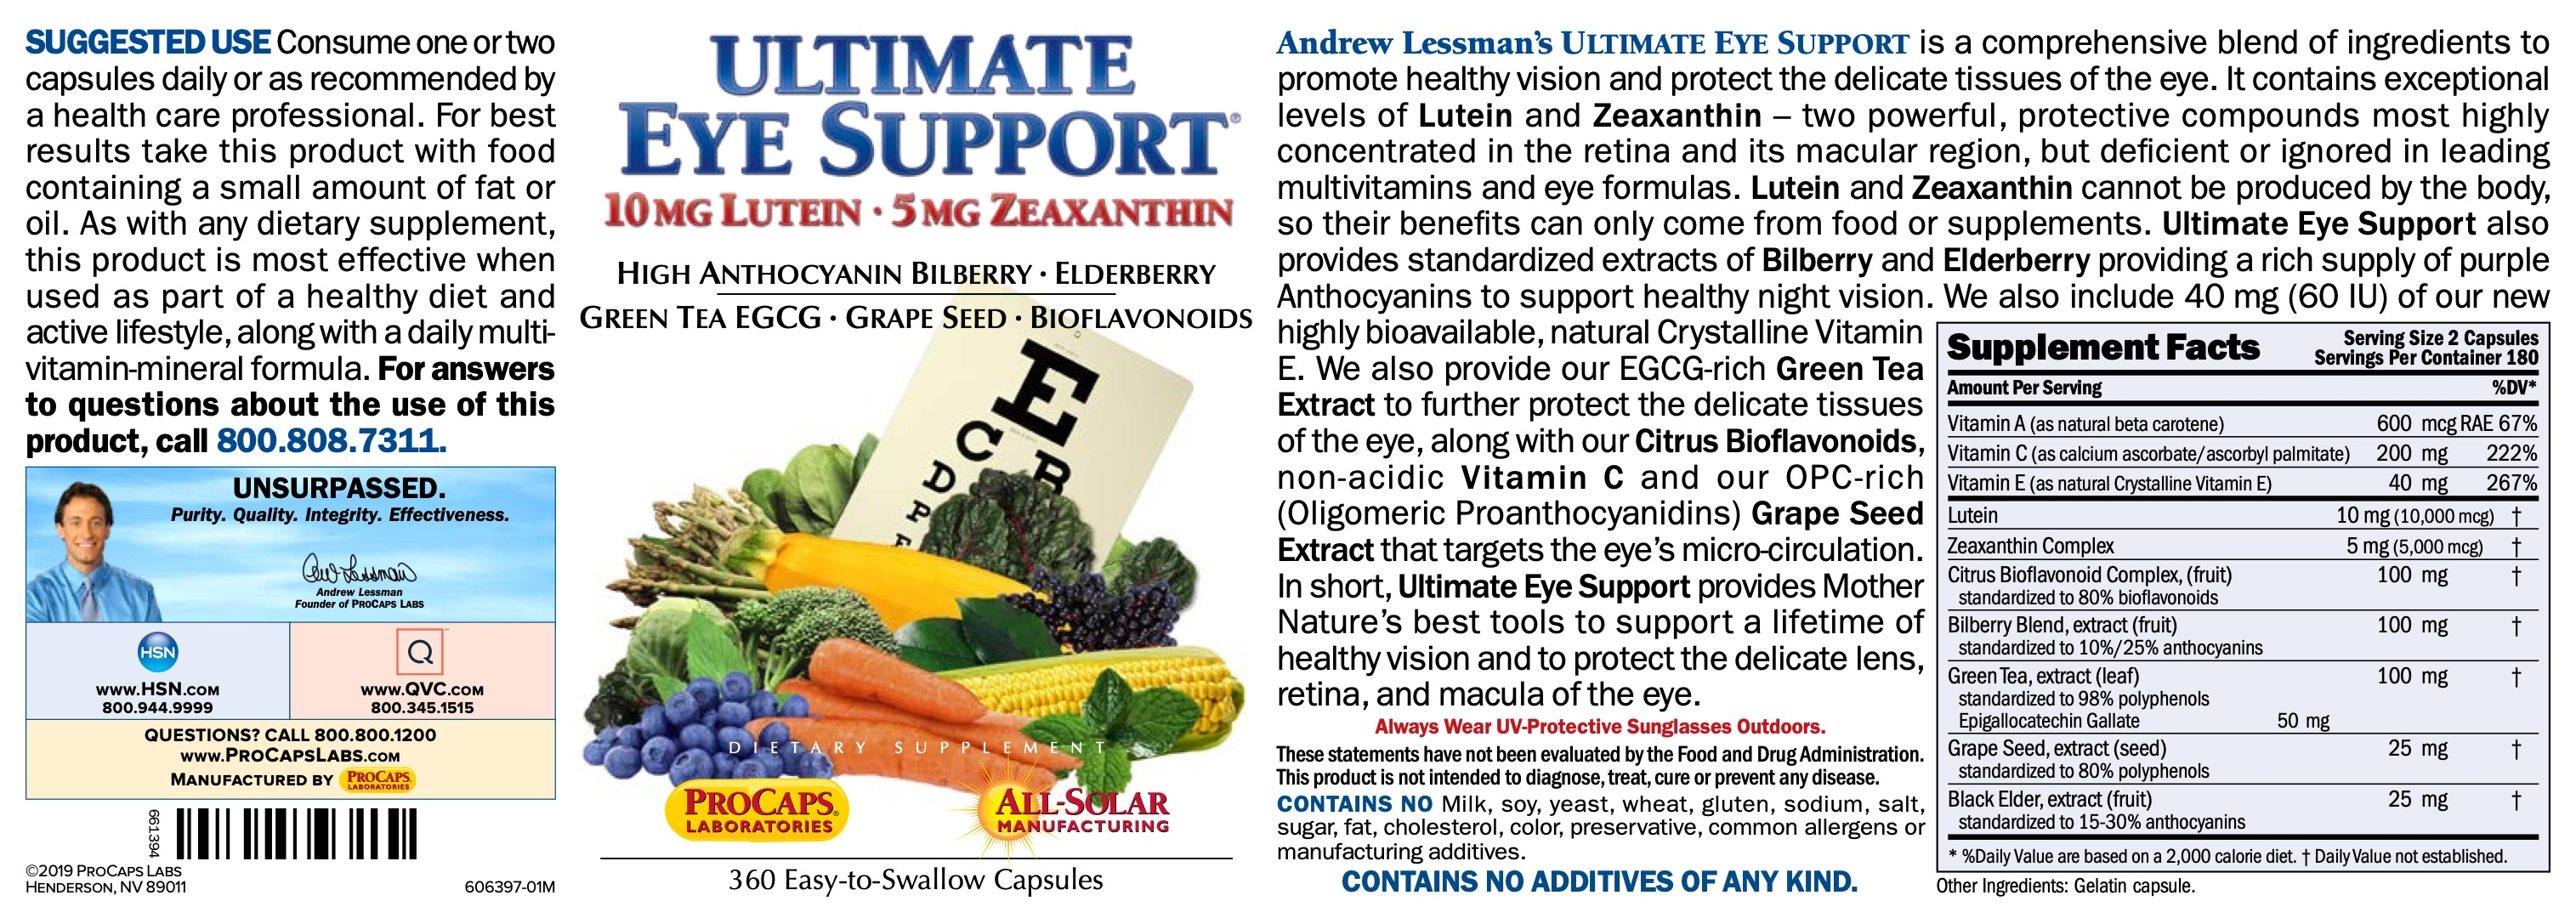 Ultimate-Eye-Support-Capsules-Eye-Nutrients